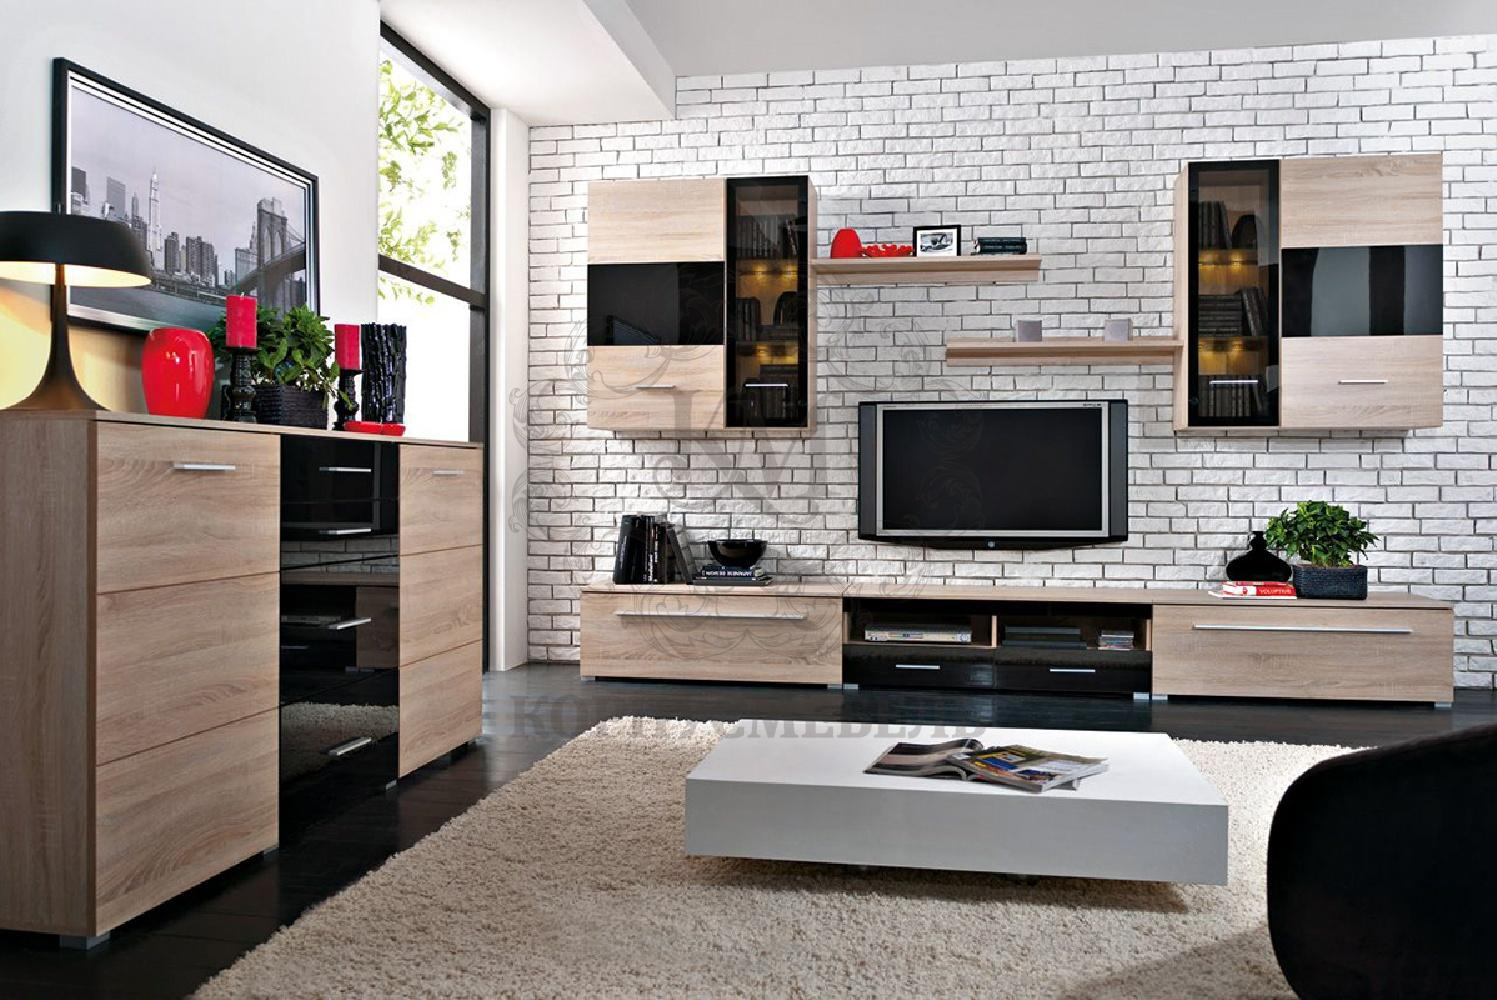 Gerat whitewashed brickwork as the backdrop of wooden cabinet furniture all around the living